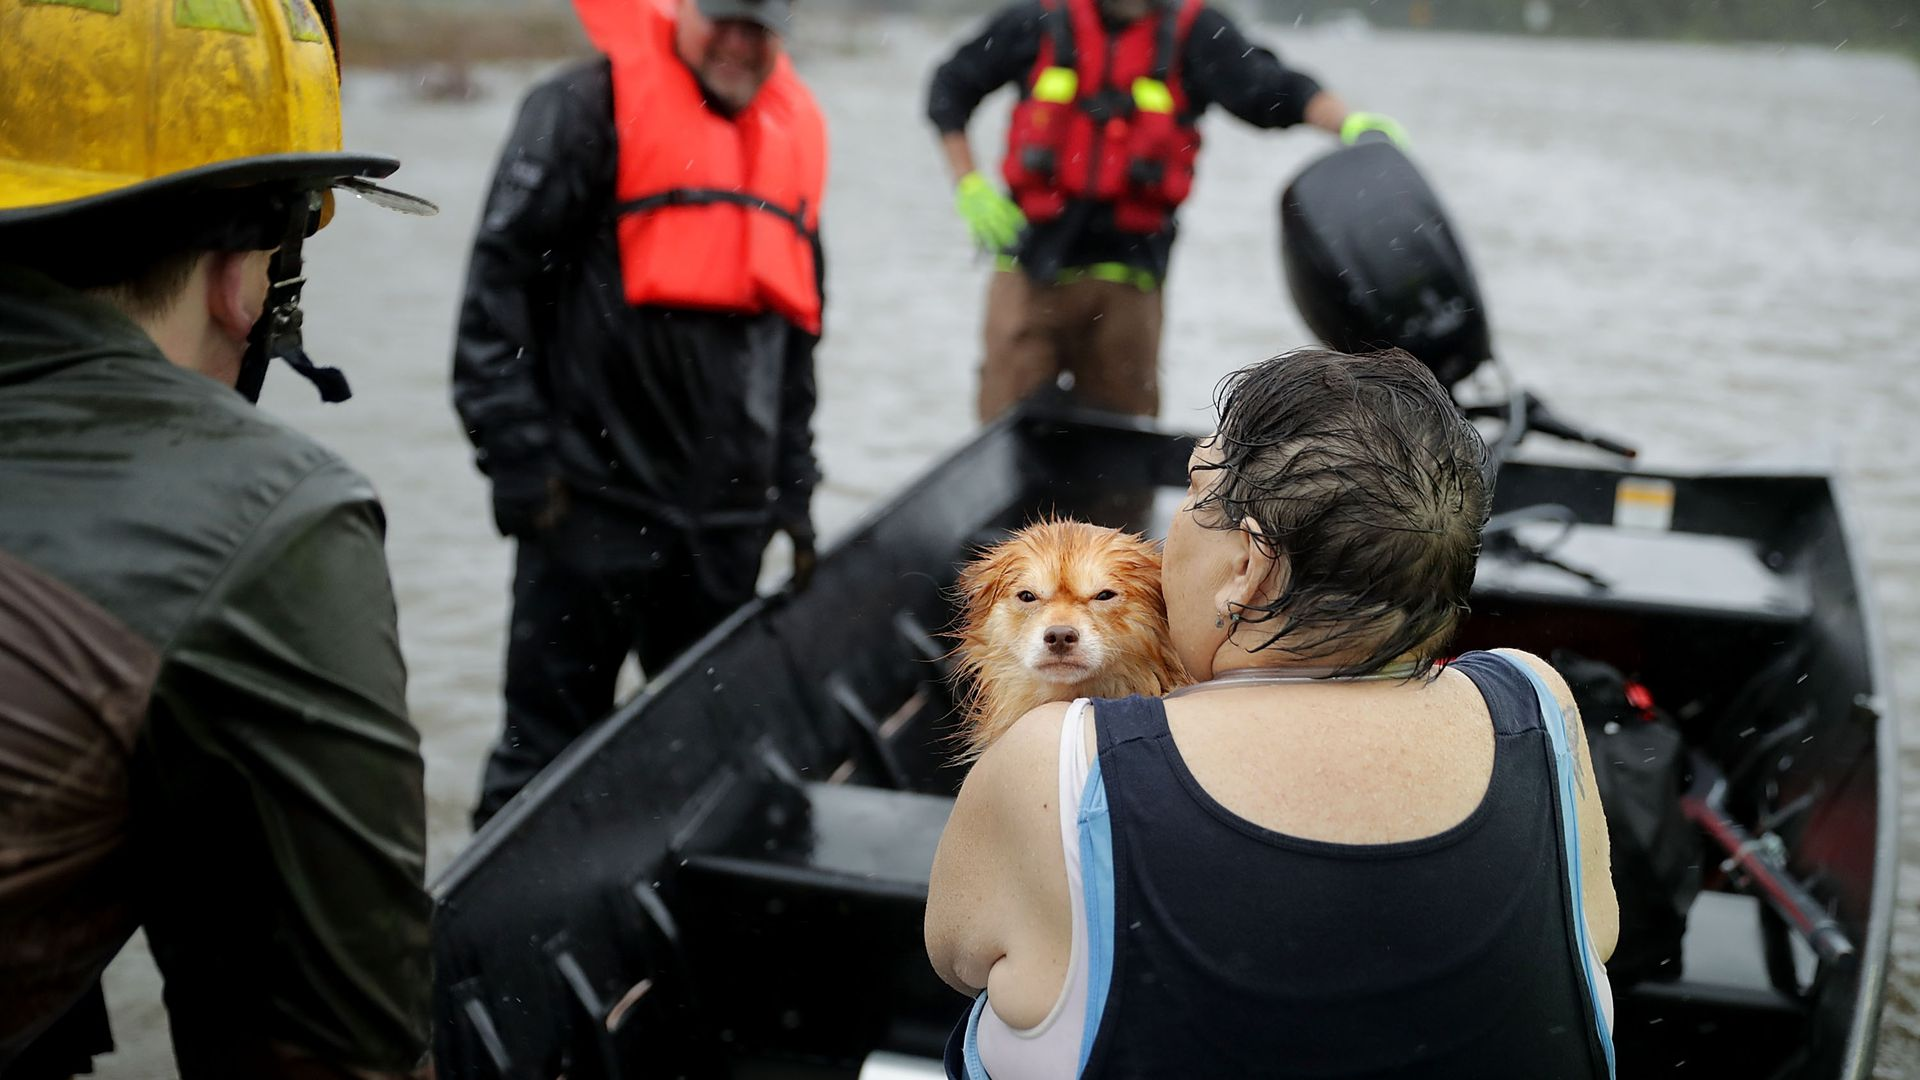 Rescue workers from use a boat to rescue a woman and her dog from their flooded home during Hurricane Florence on September 14, 2018 in James City, North Carolina.